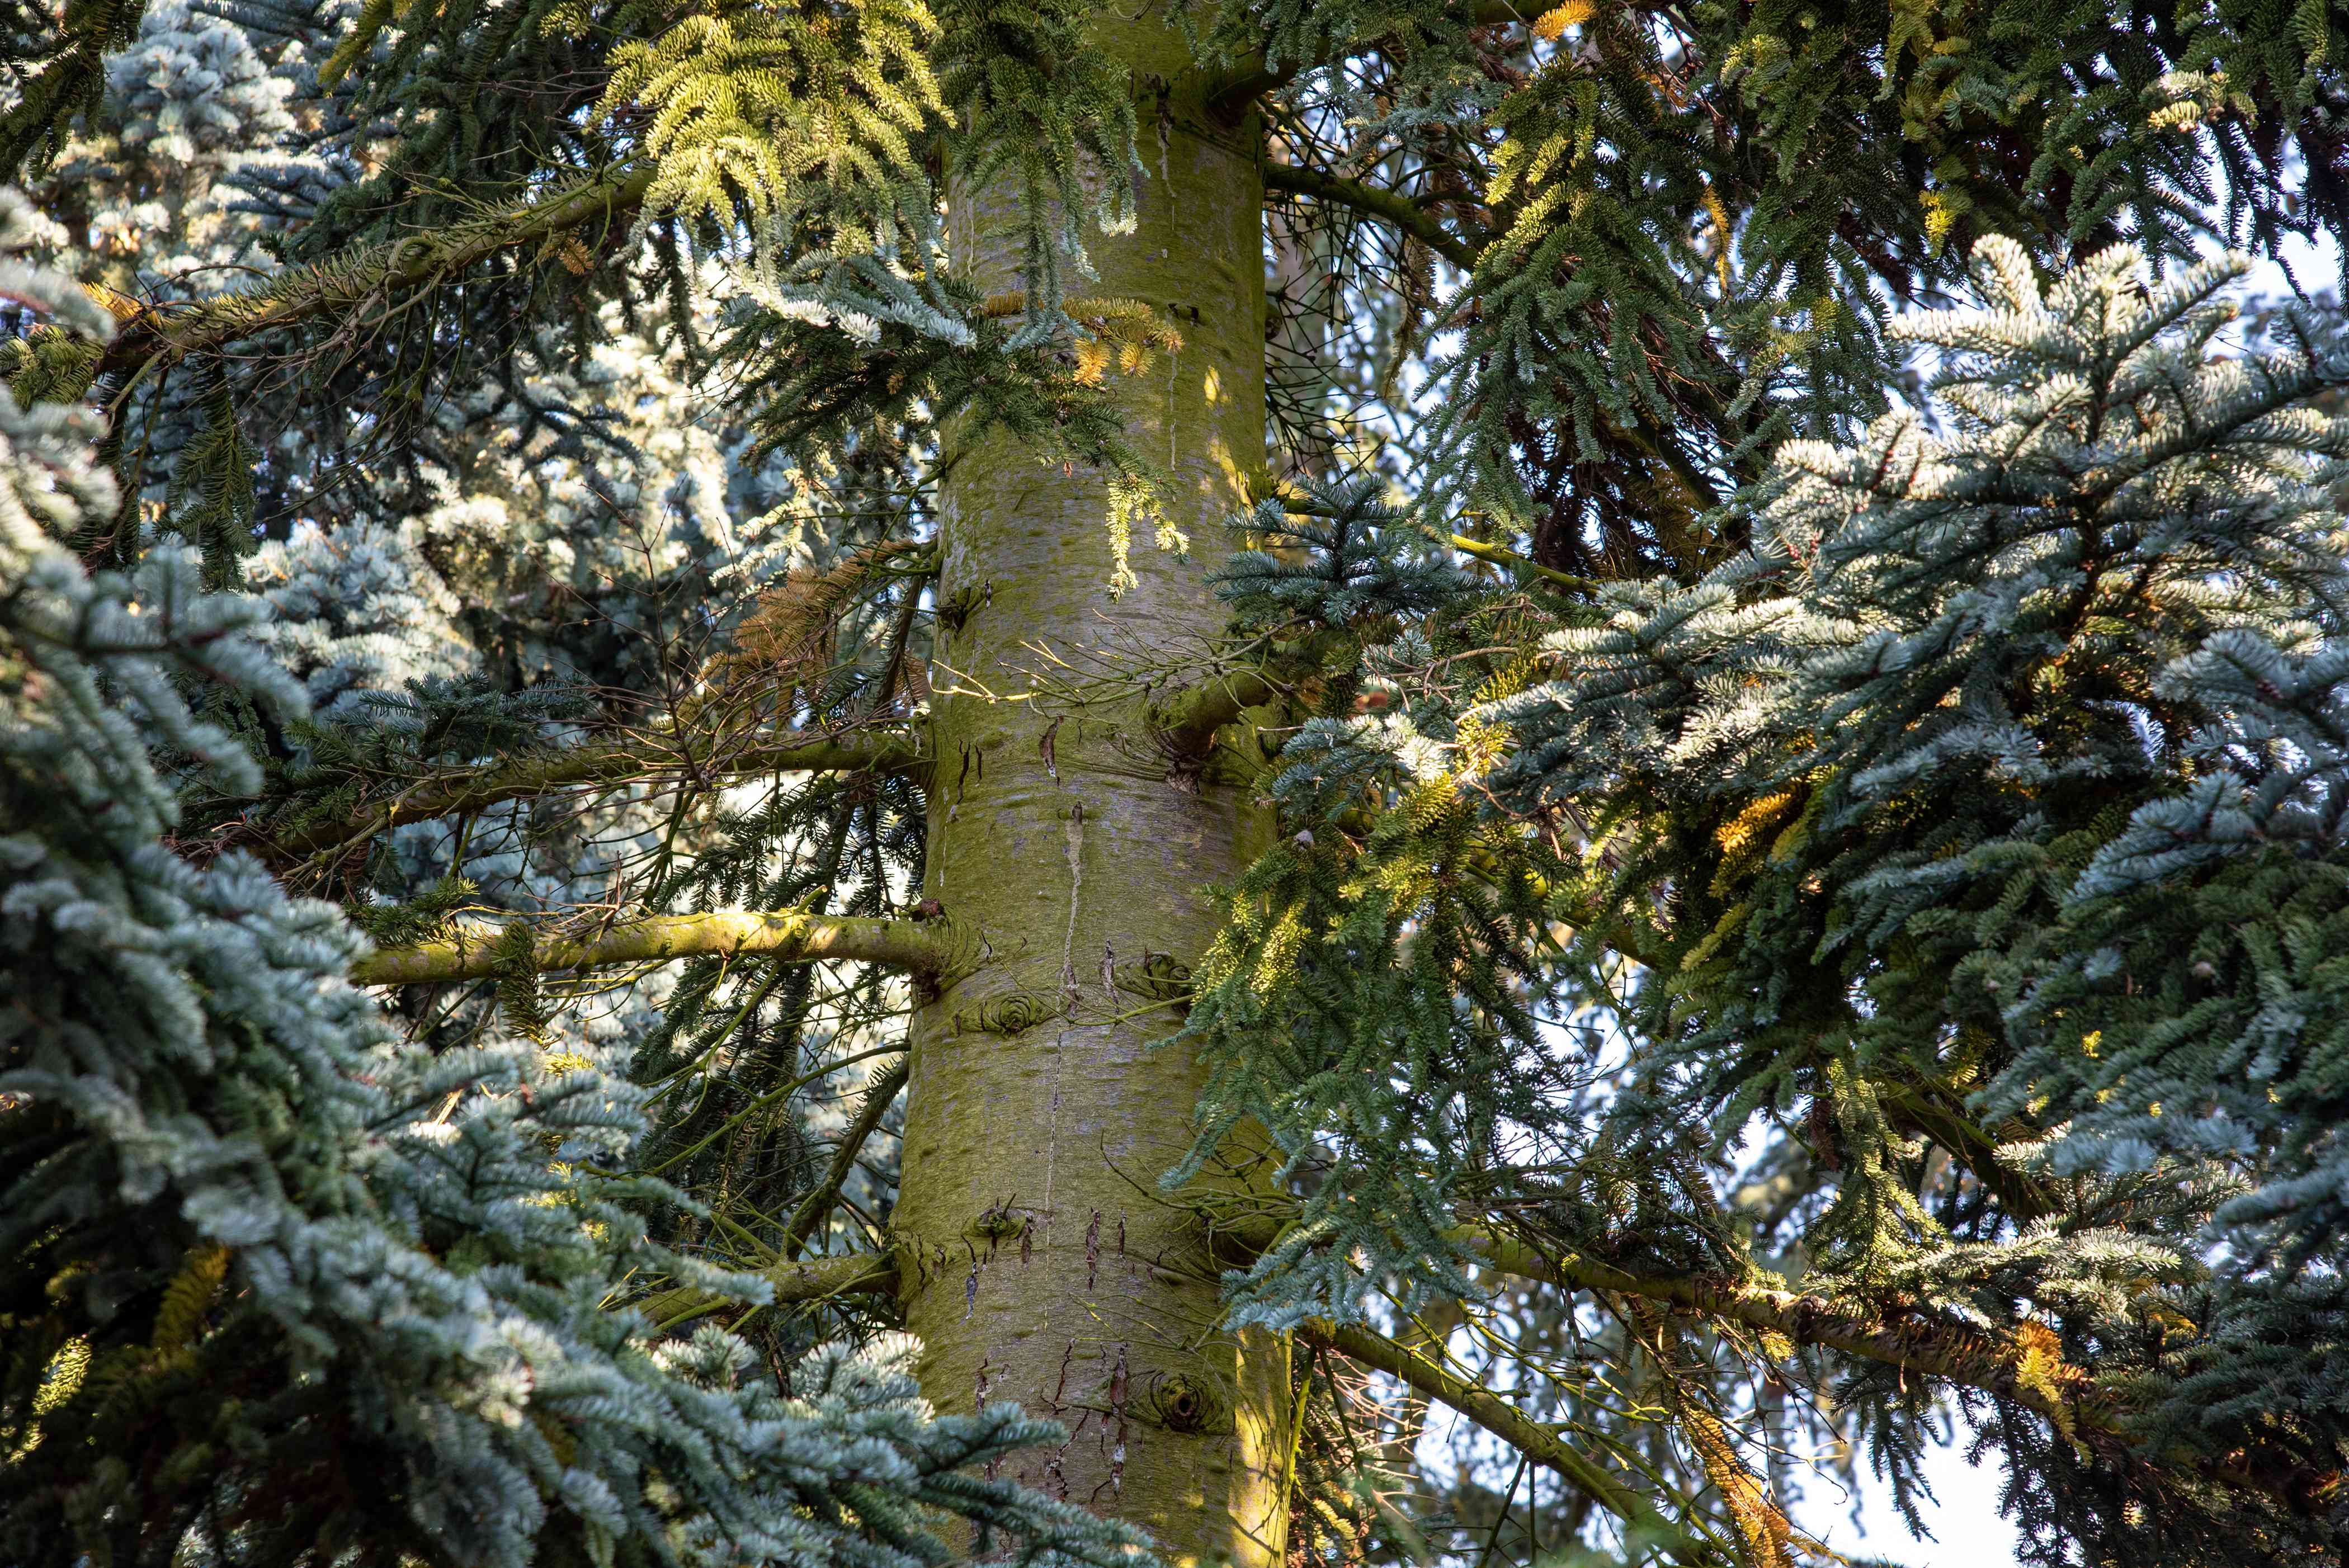 Noble fir tree trunk with silvery-green bark surrounded by needled branches